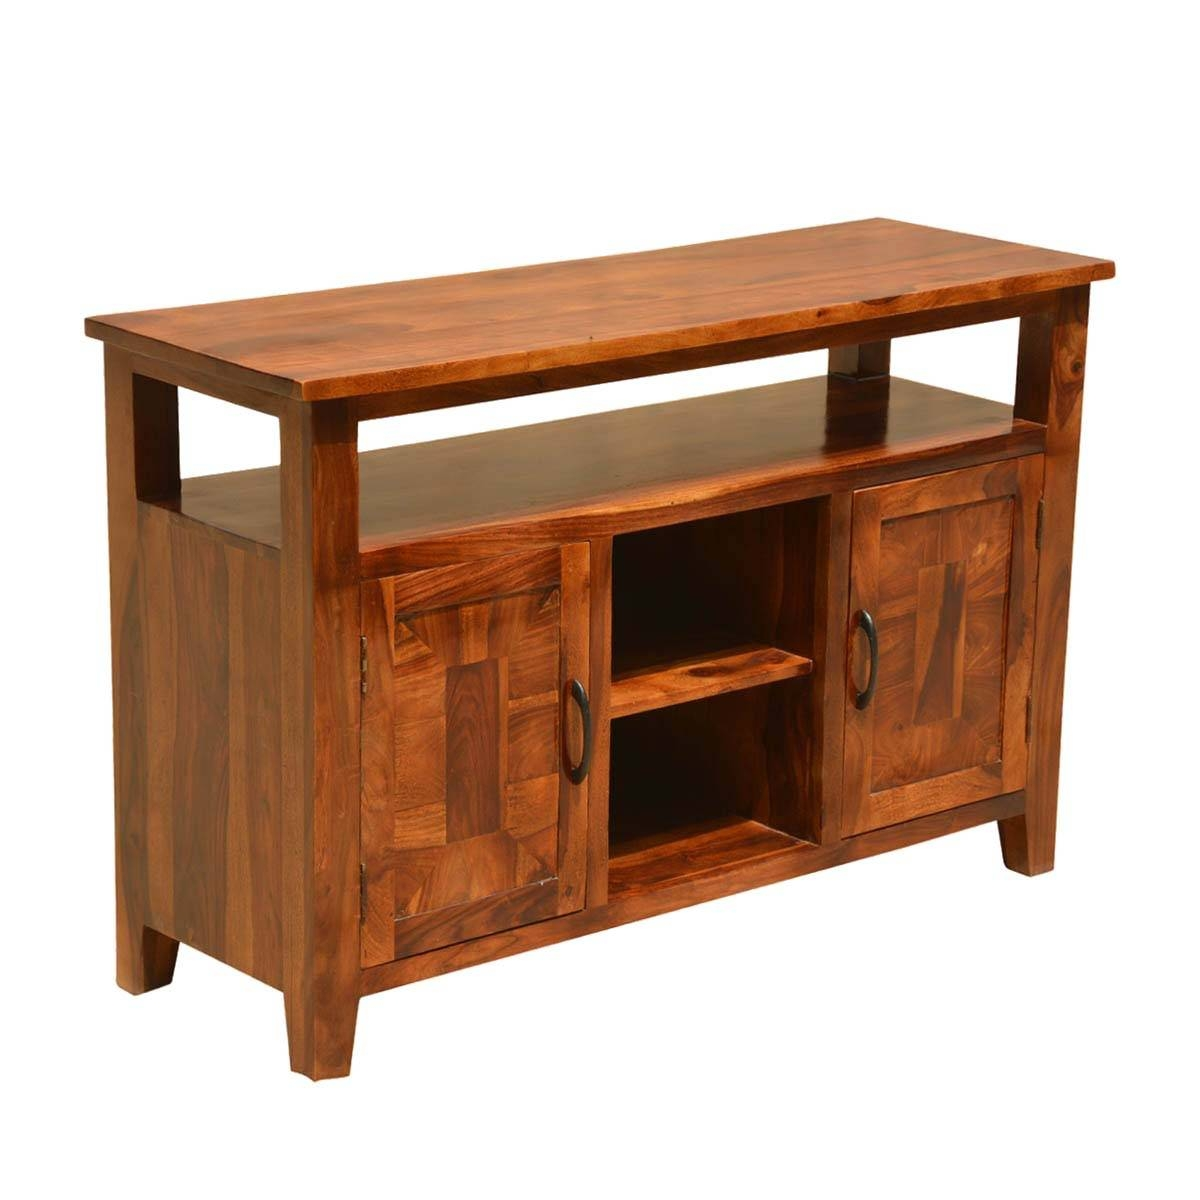 Nevada Traditional Solid Wood Buffet Rustic Sideboard Server Regarding Real Wood Sideboards (View 14 of 15)